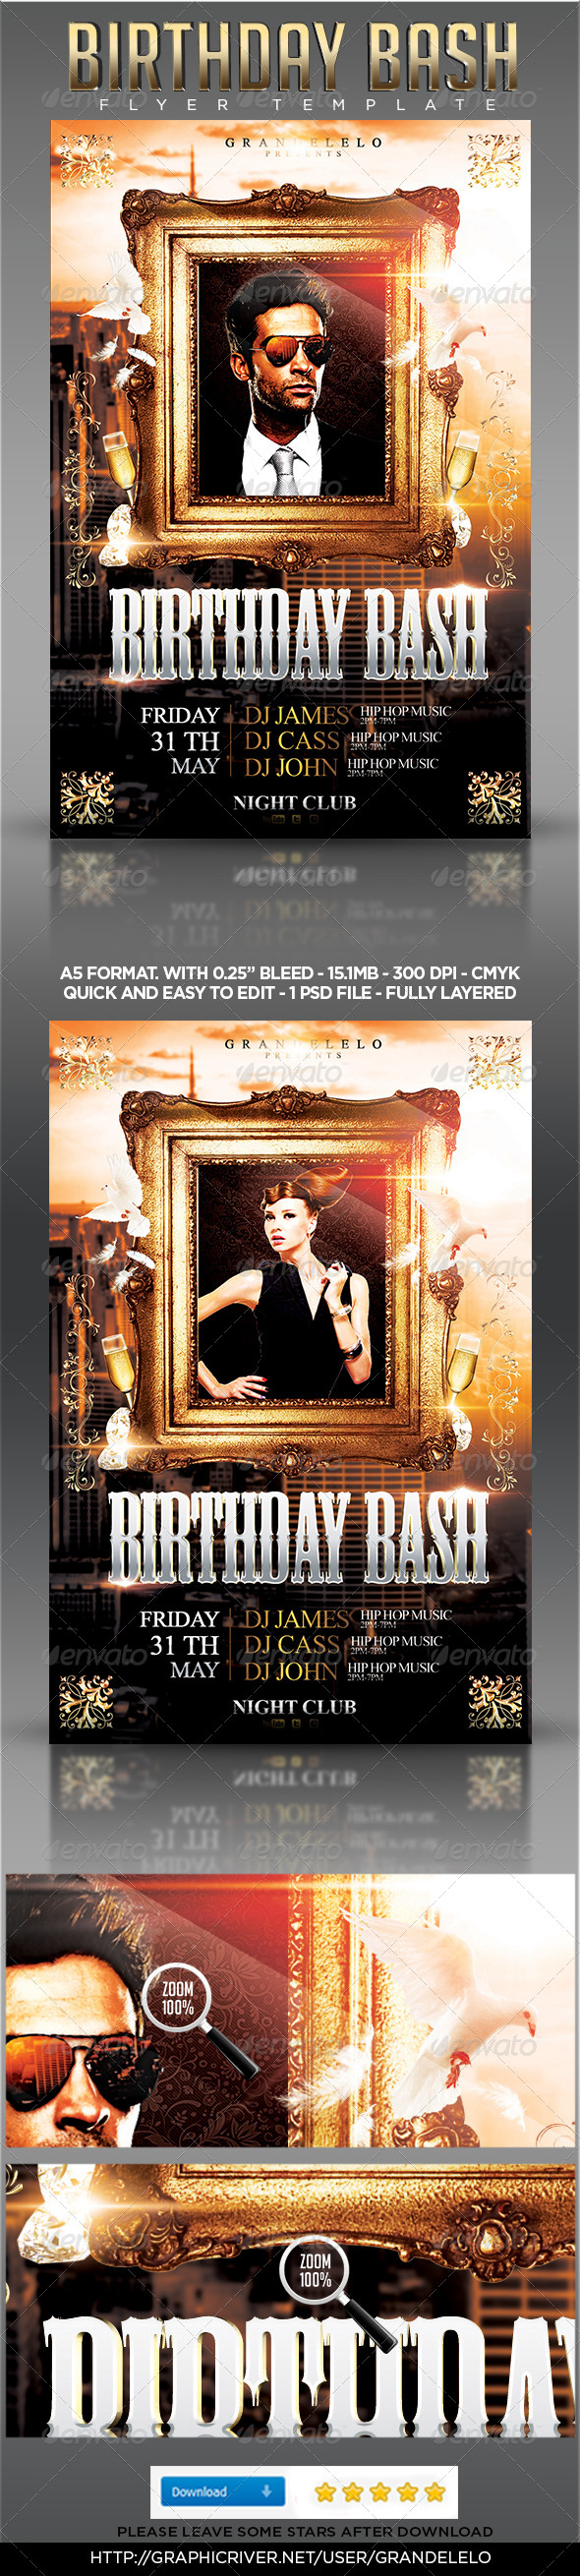 GraphicRiver Birthday Bash Flyer Template 4668739